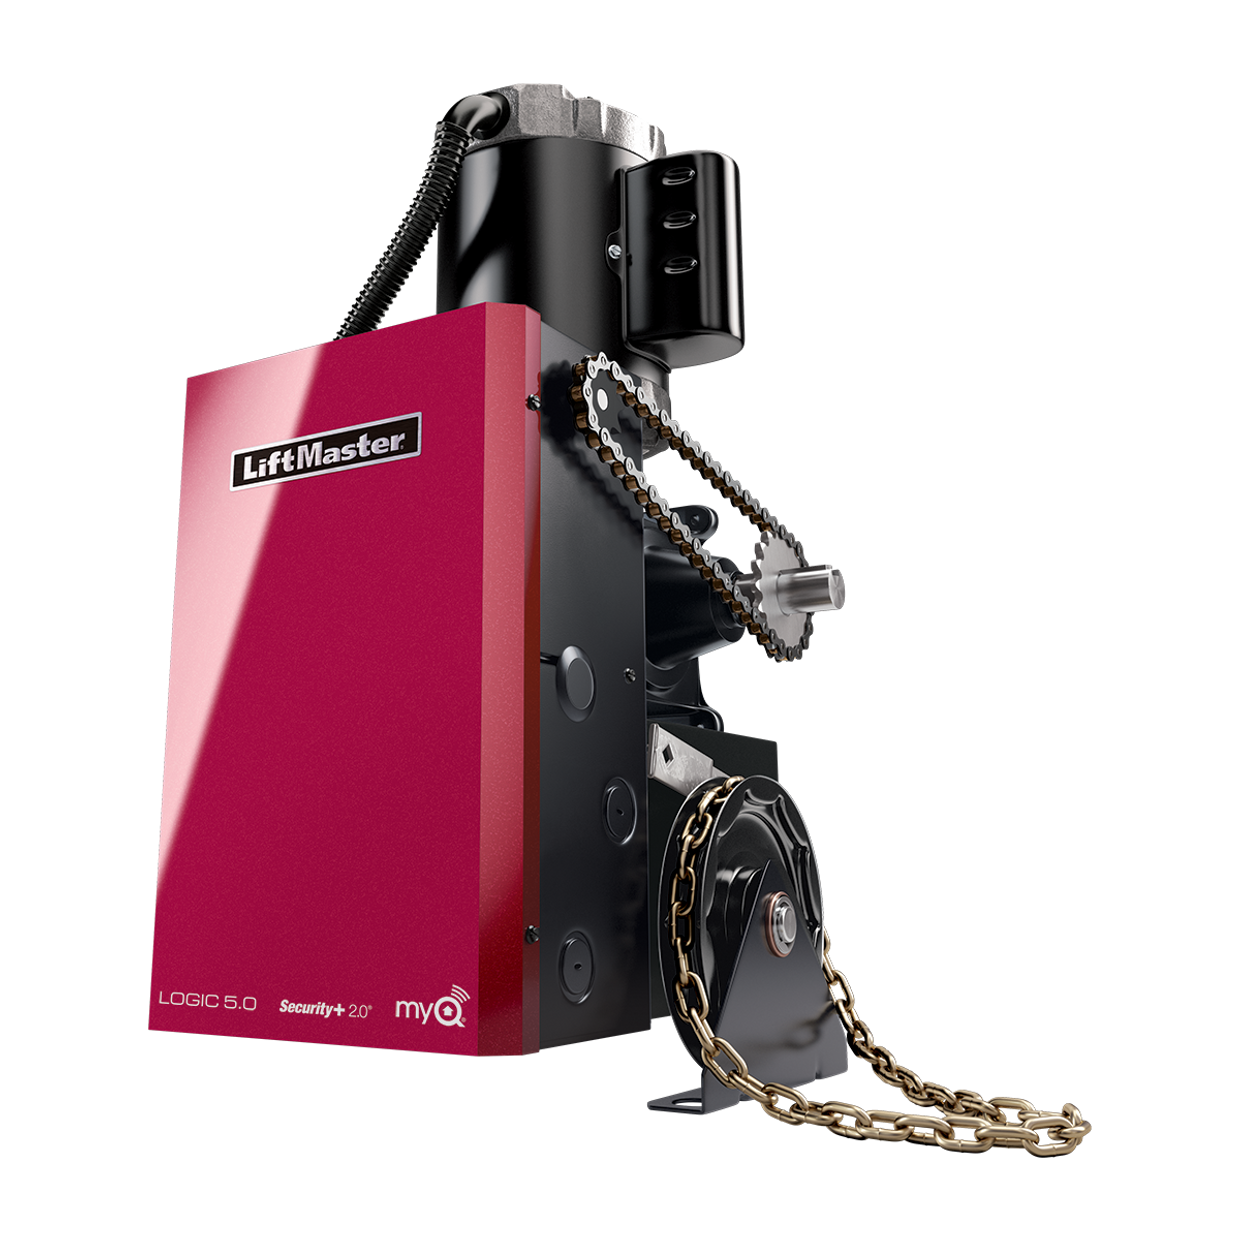 Gh Elite Commercial Door Operators Liftmaster Amp 208 3 Phase Wiring Diagram Get Free Image About Gearhead Hoist Operator Logic 50